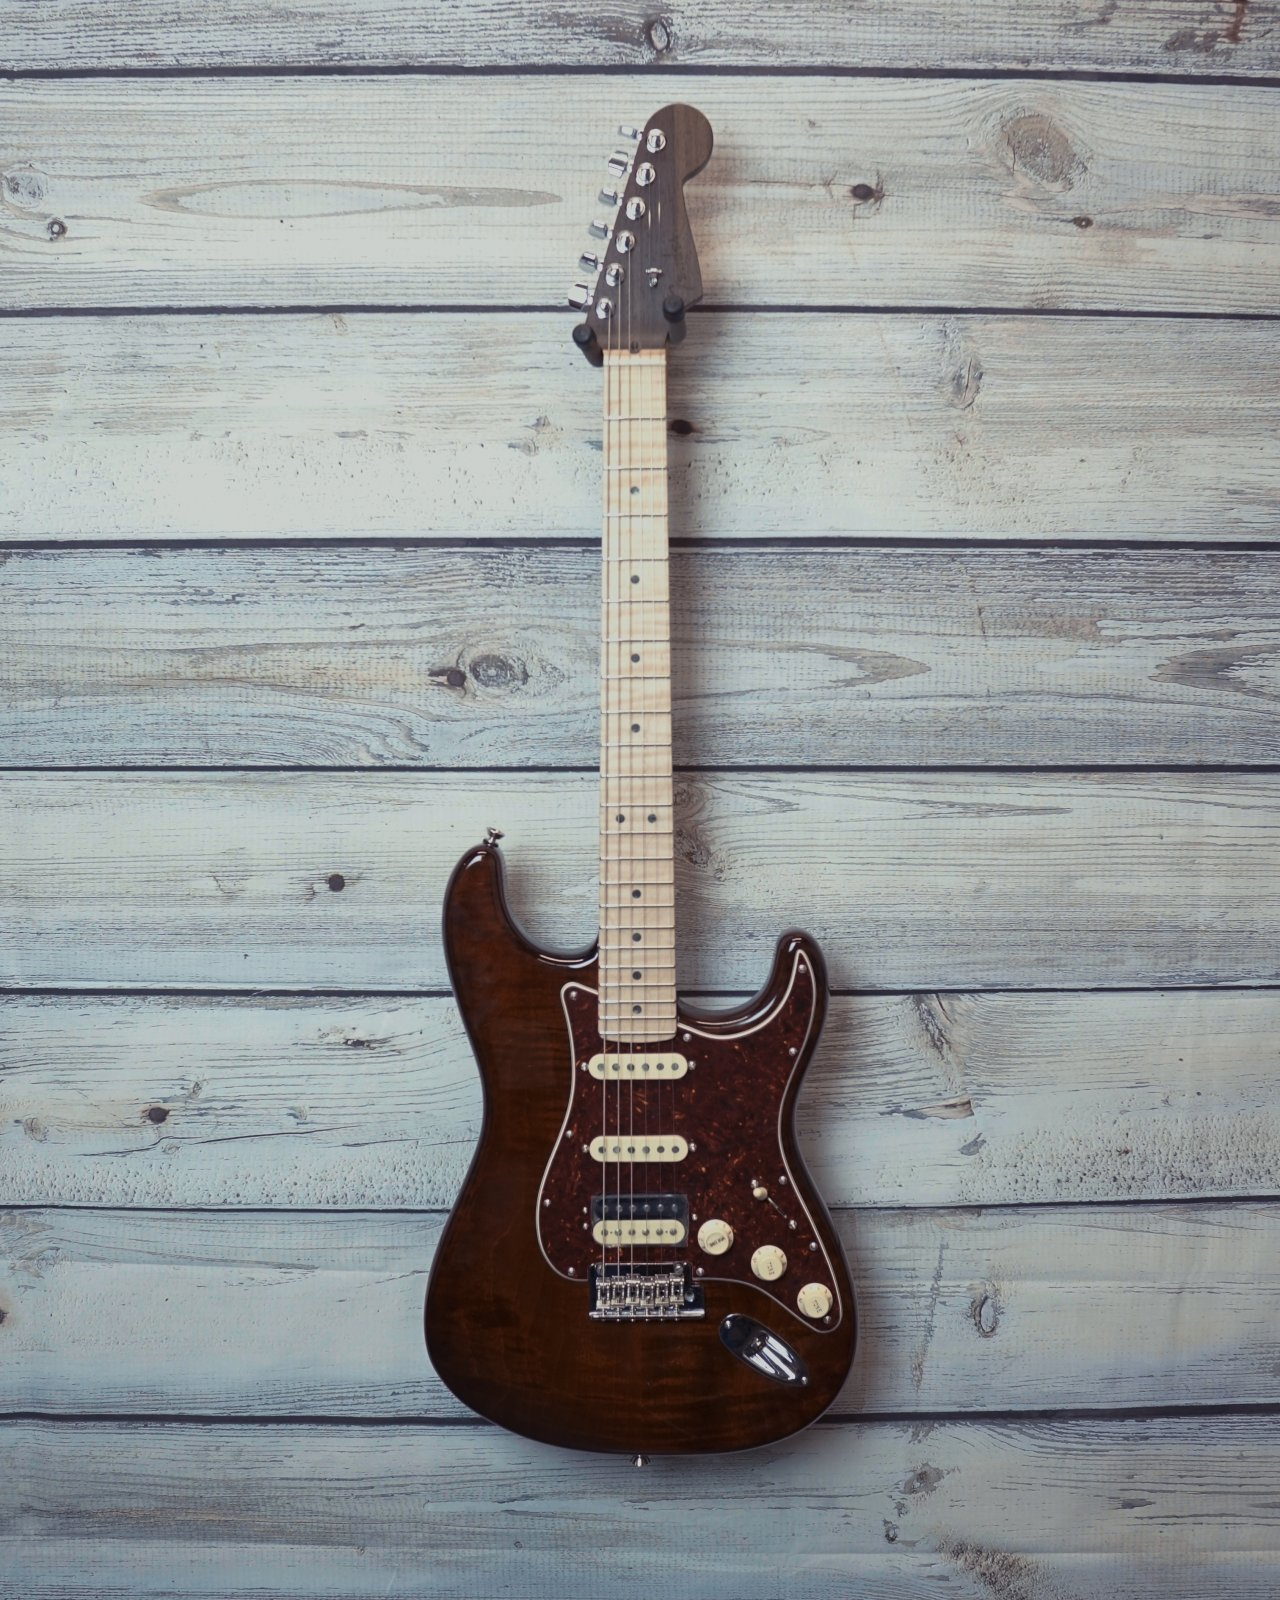 Fender Rarities Flame Top Stratocaster, Flame Maple Top, Rosewood neck with Maple Fingerboard, Golden Brown